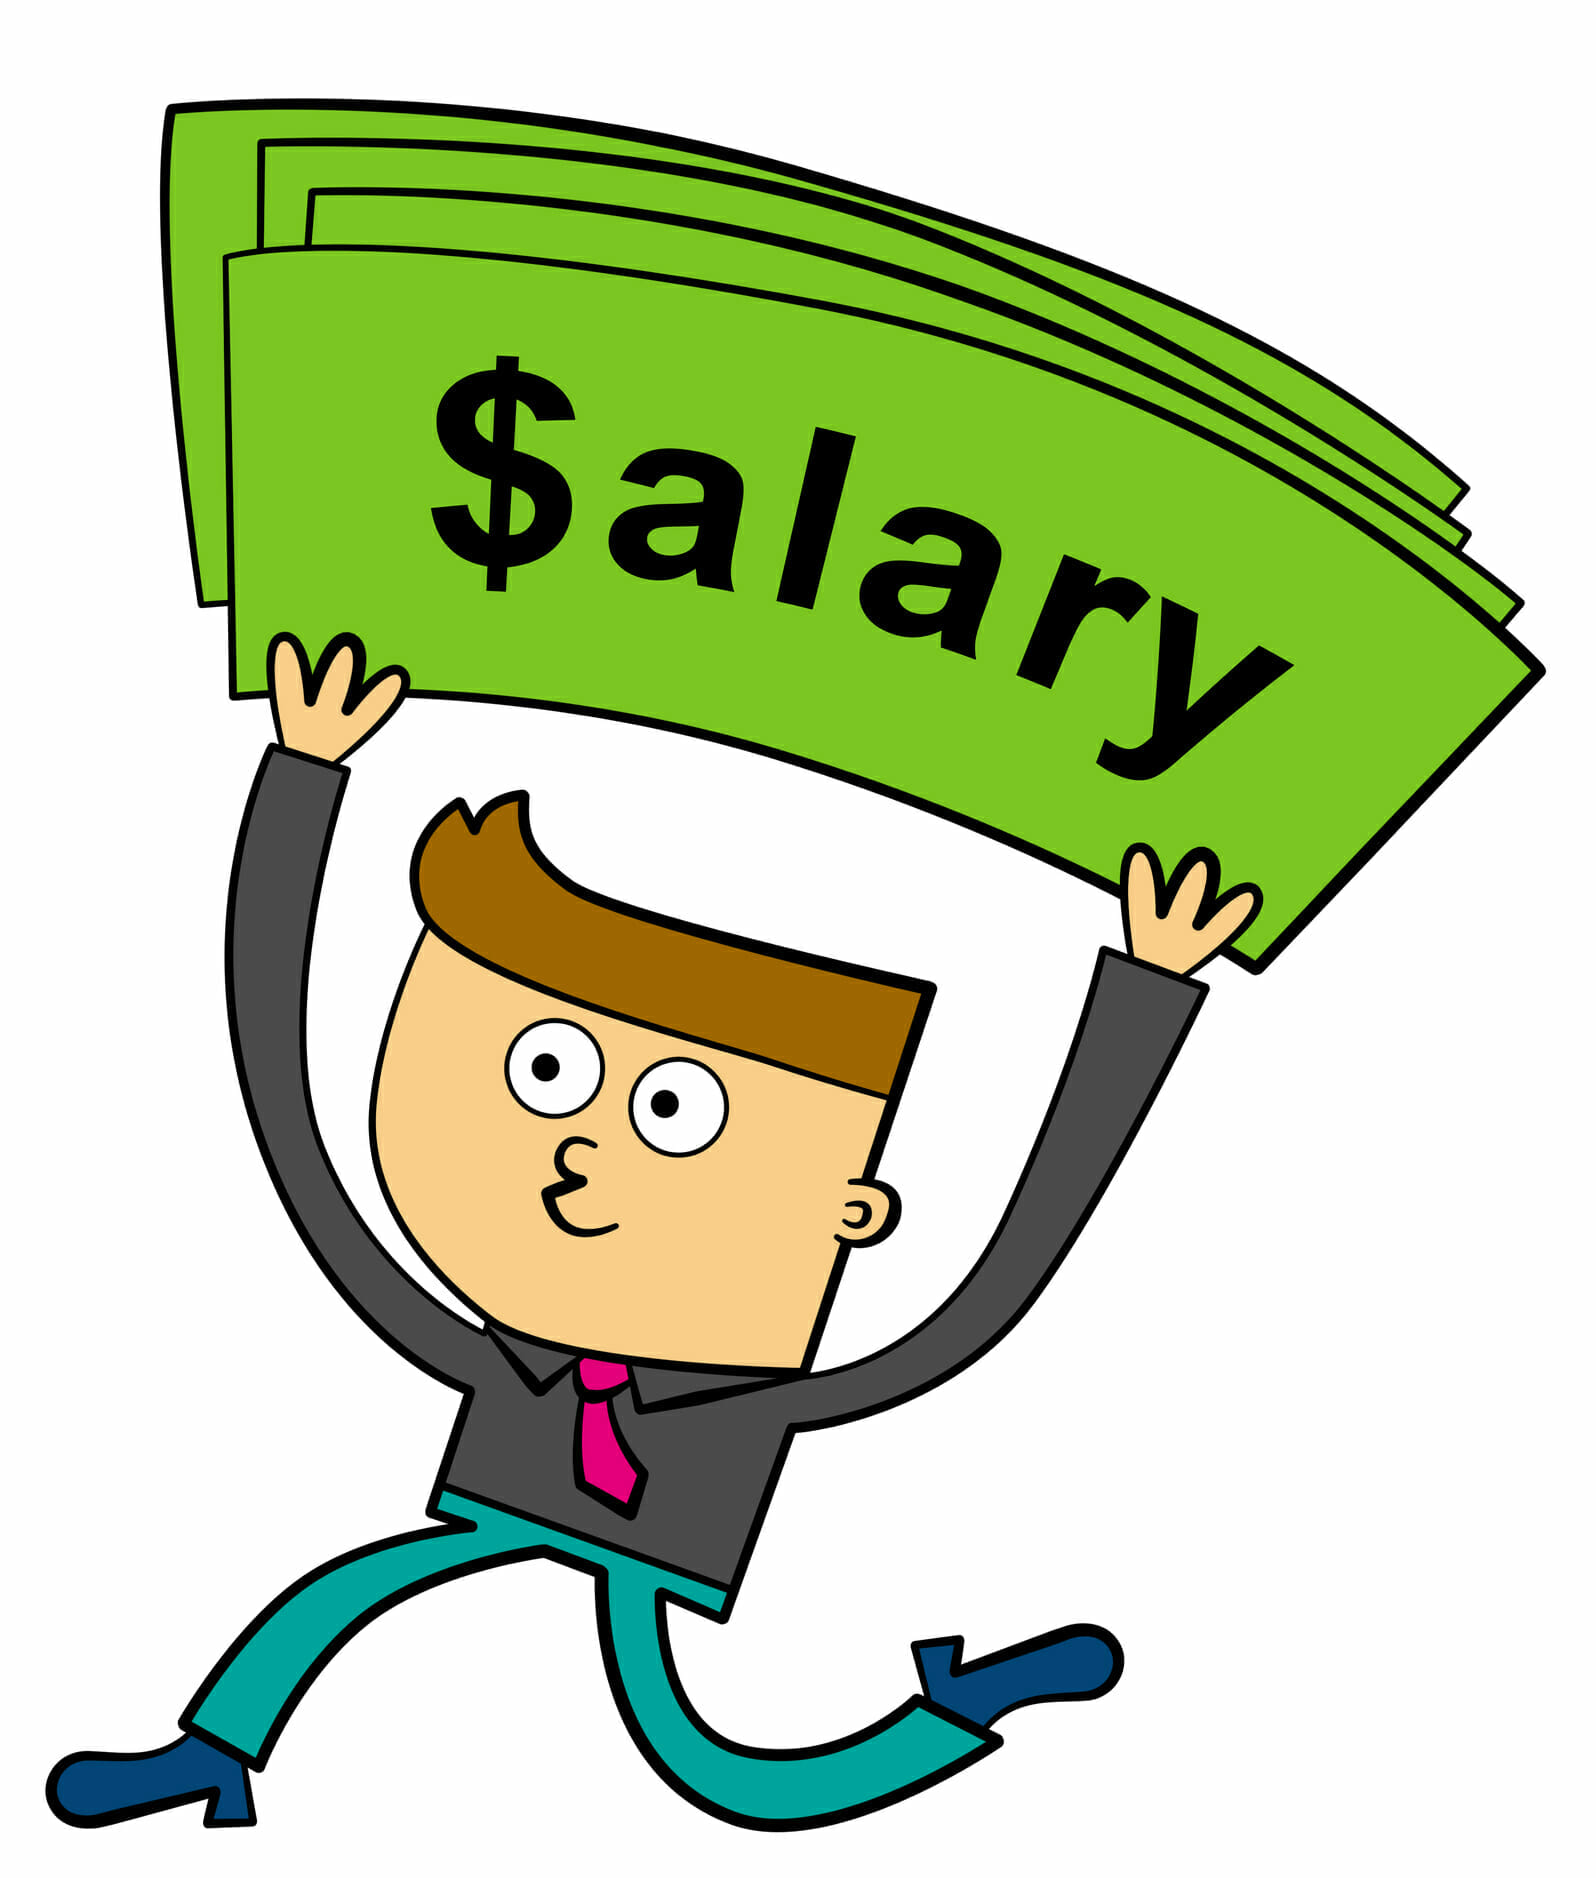 http://www.dreamstime.com/stock-images-salary-image27023364